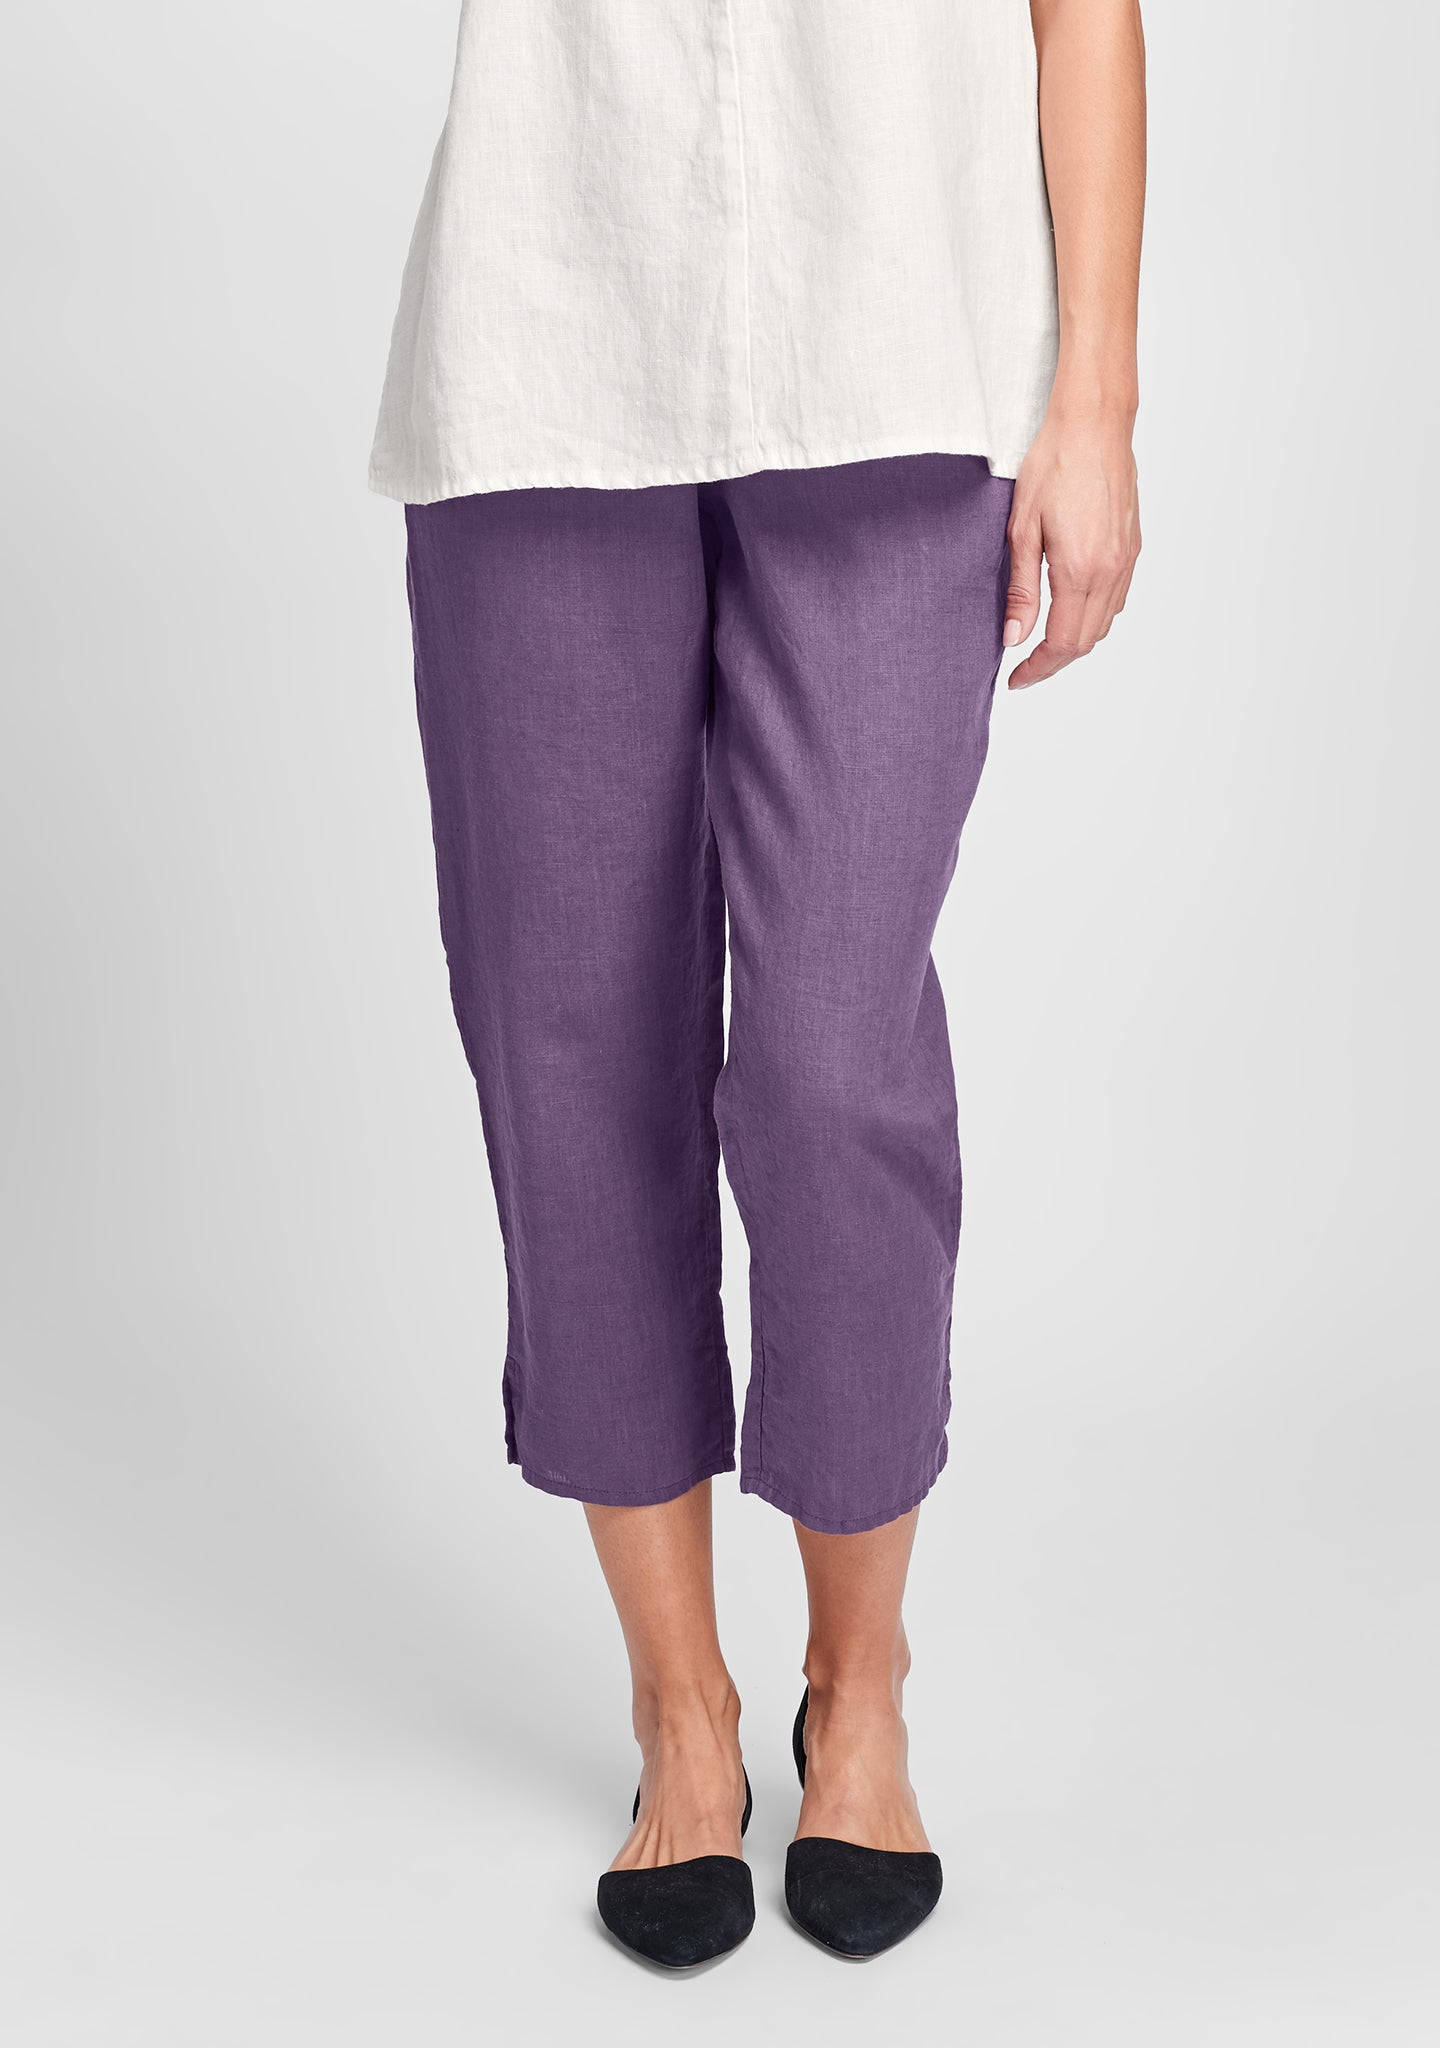 pocketed ankle pant linen pants purple